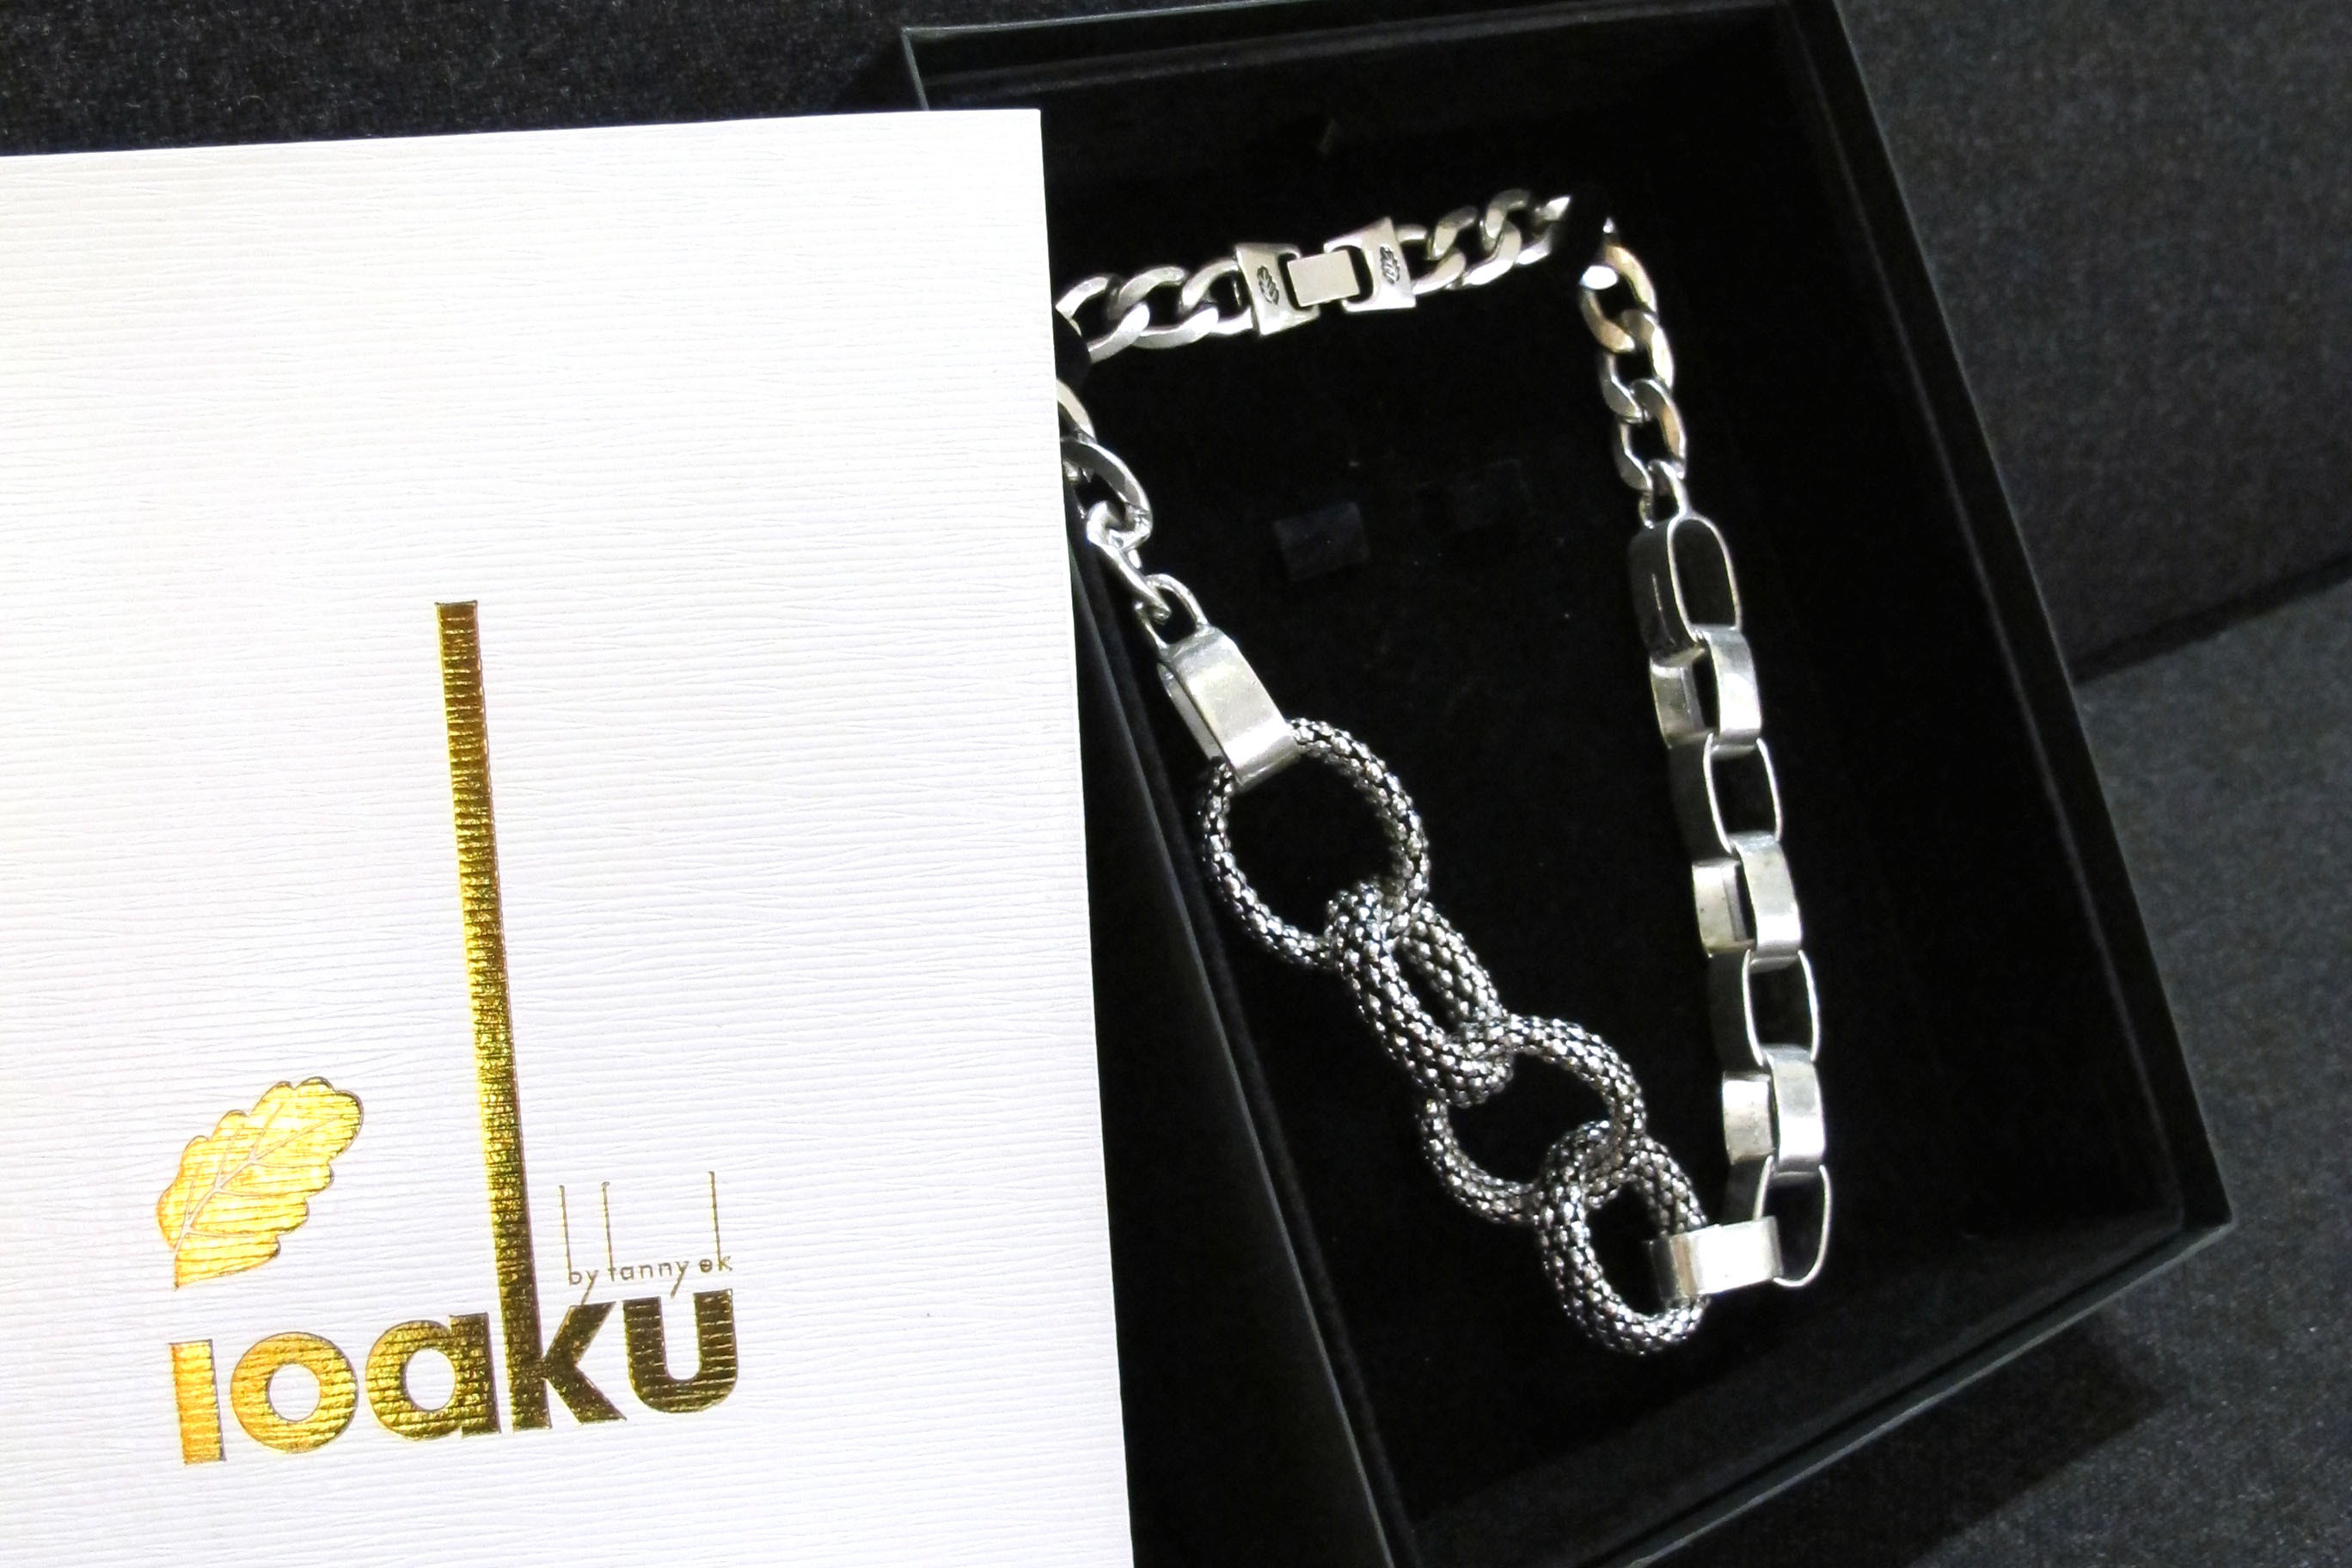 Lonk of life silver necklace Ioaku by Fanny Ek